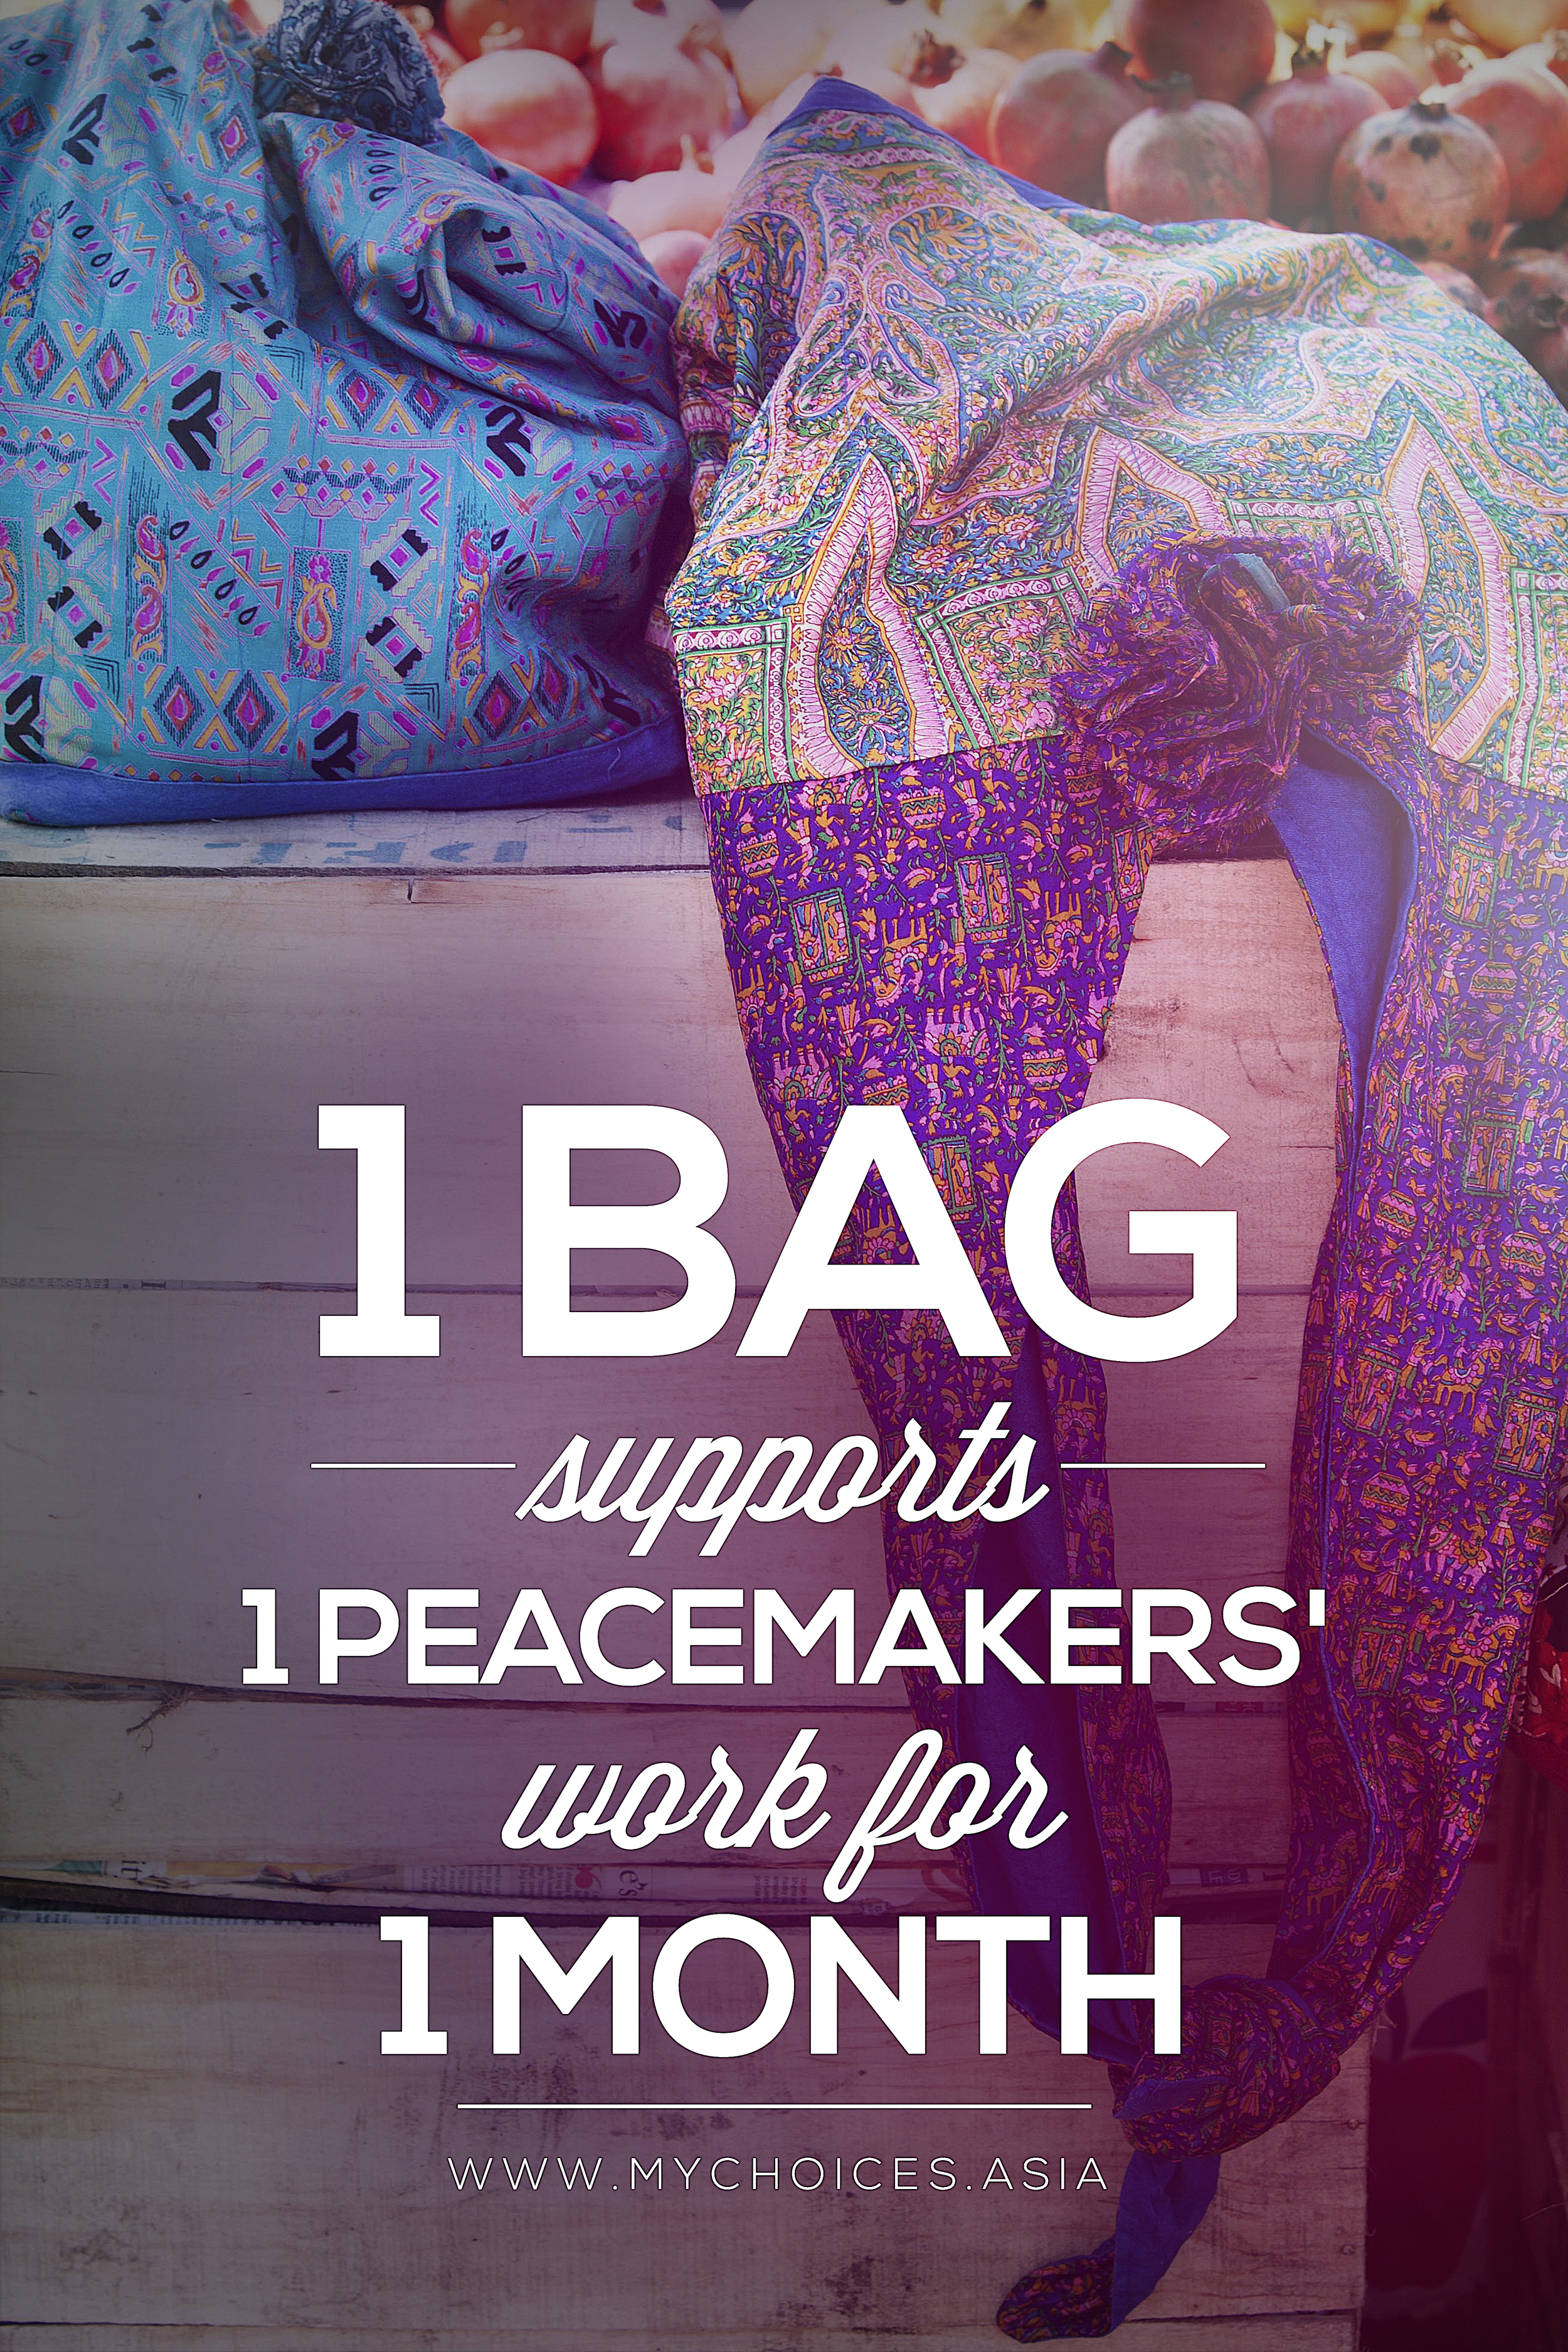 Shop our Large Sling Bag and support the work of our PeaceMakers!